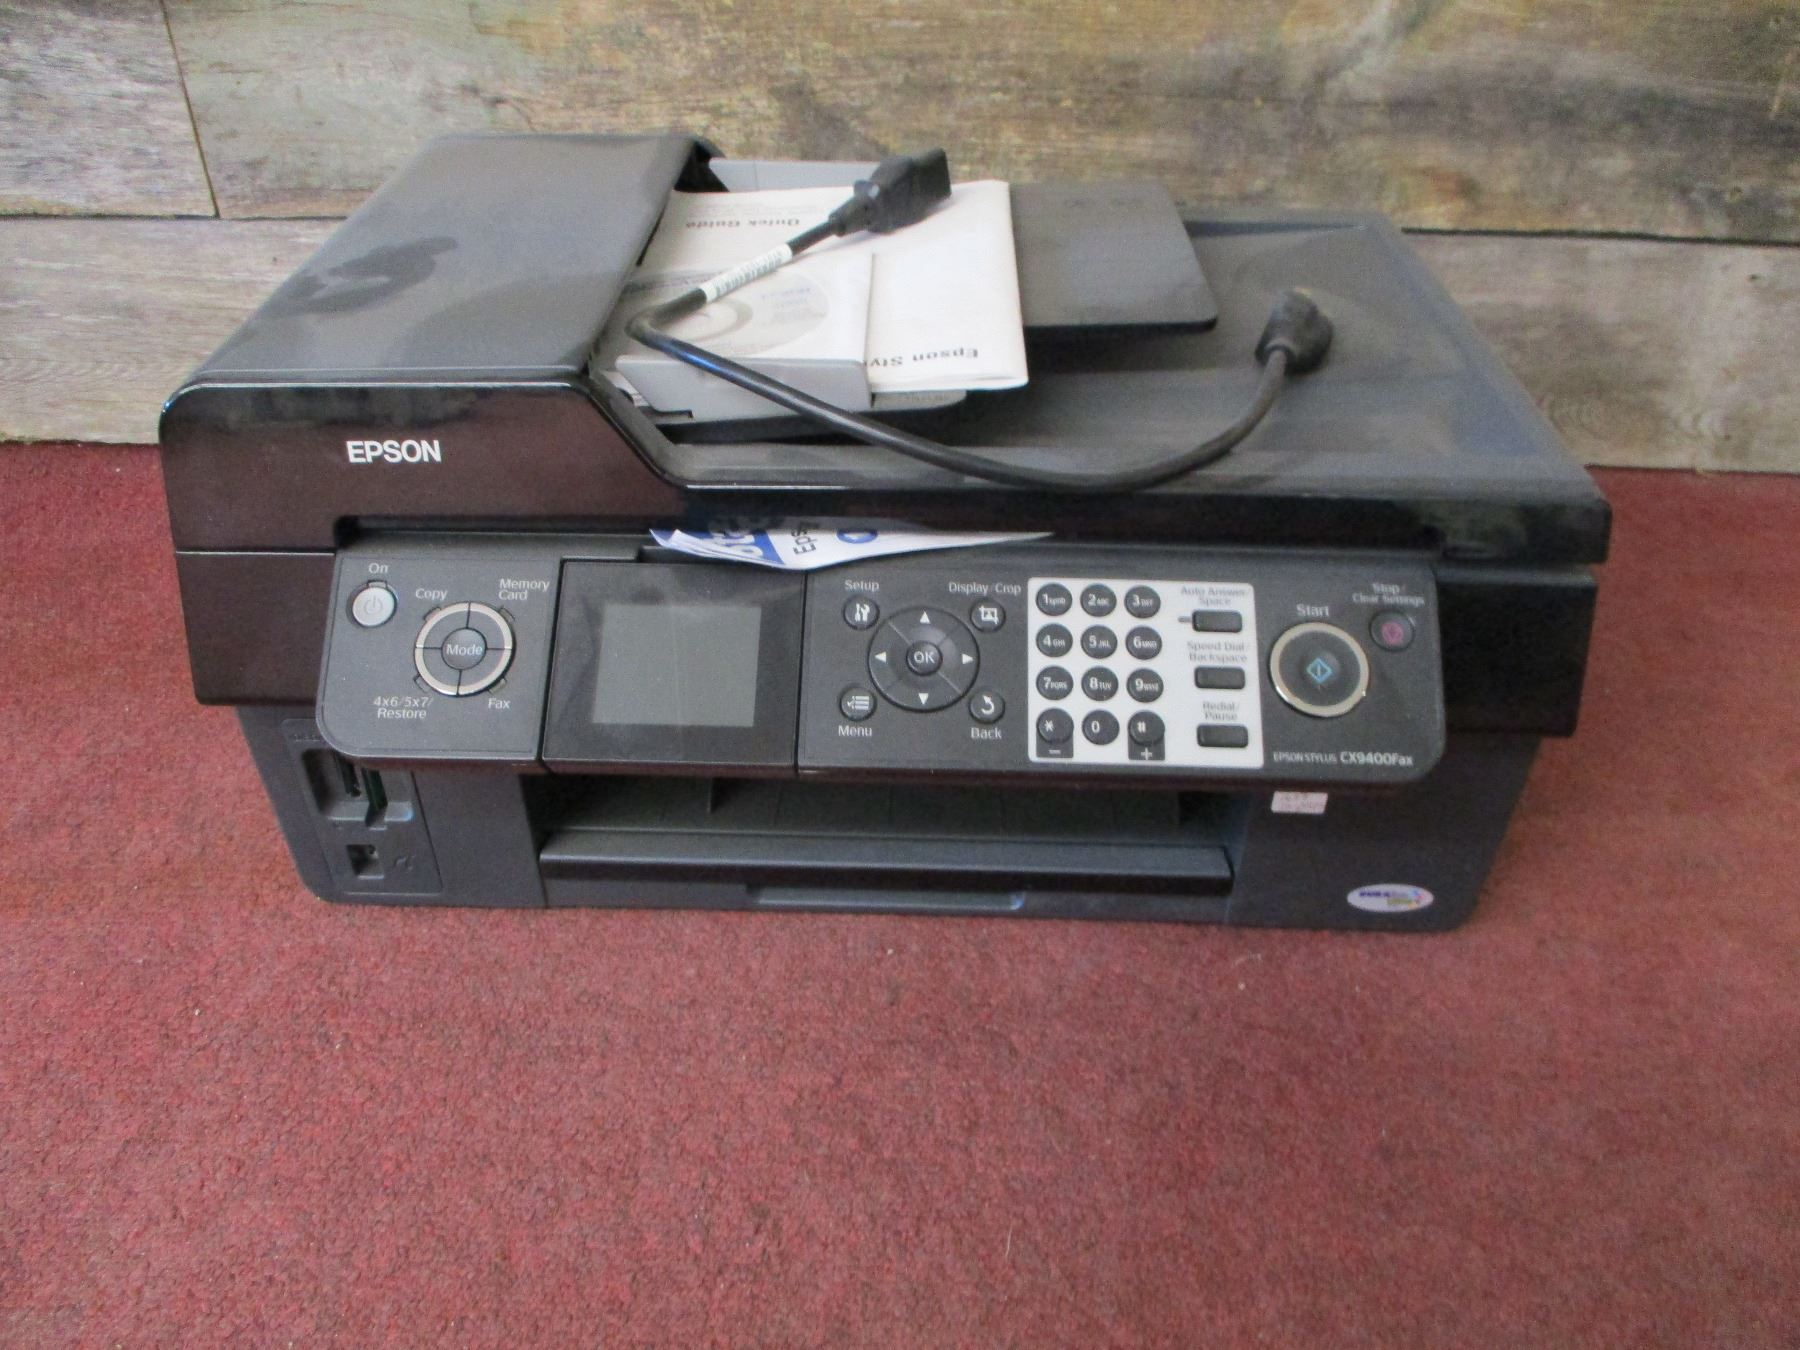 Epson Stylus CX9400Fax Driver Download Software for Windows